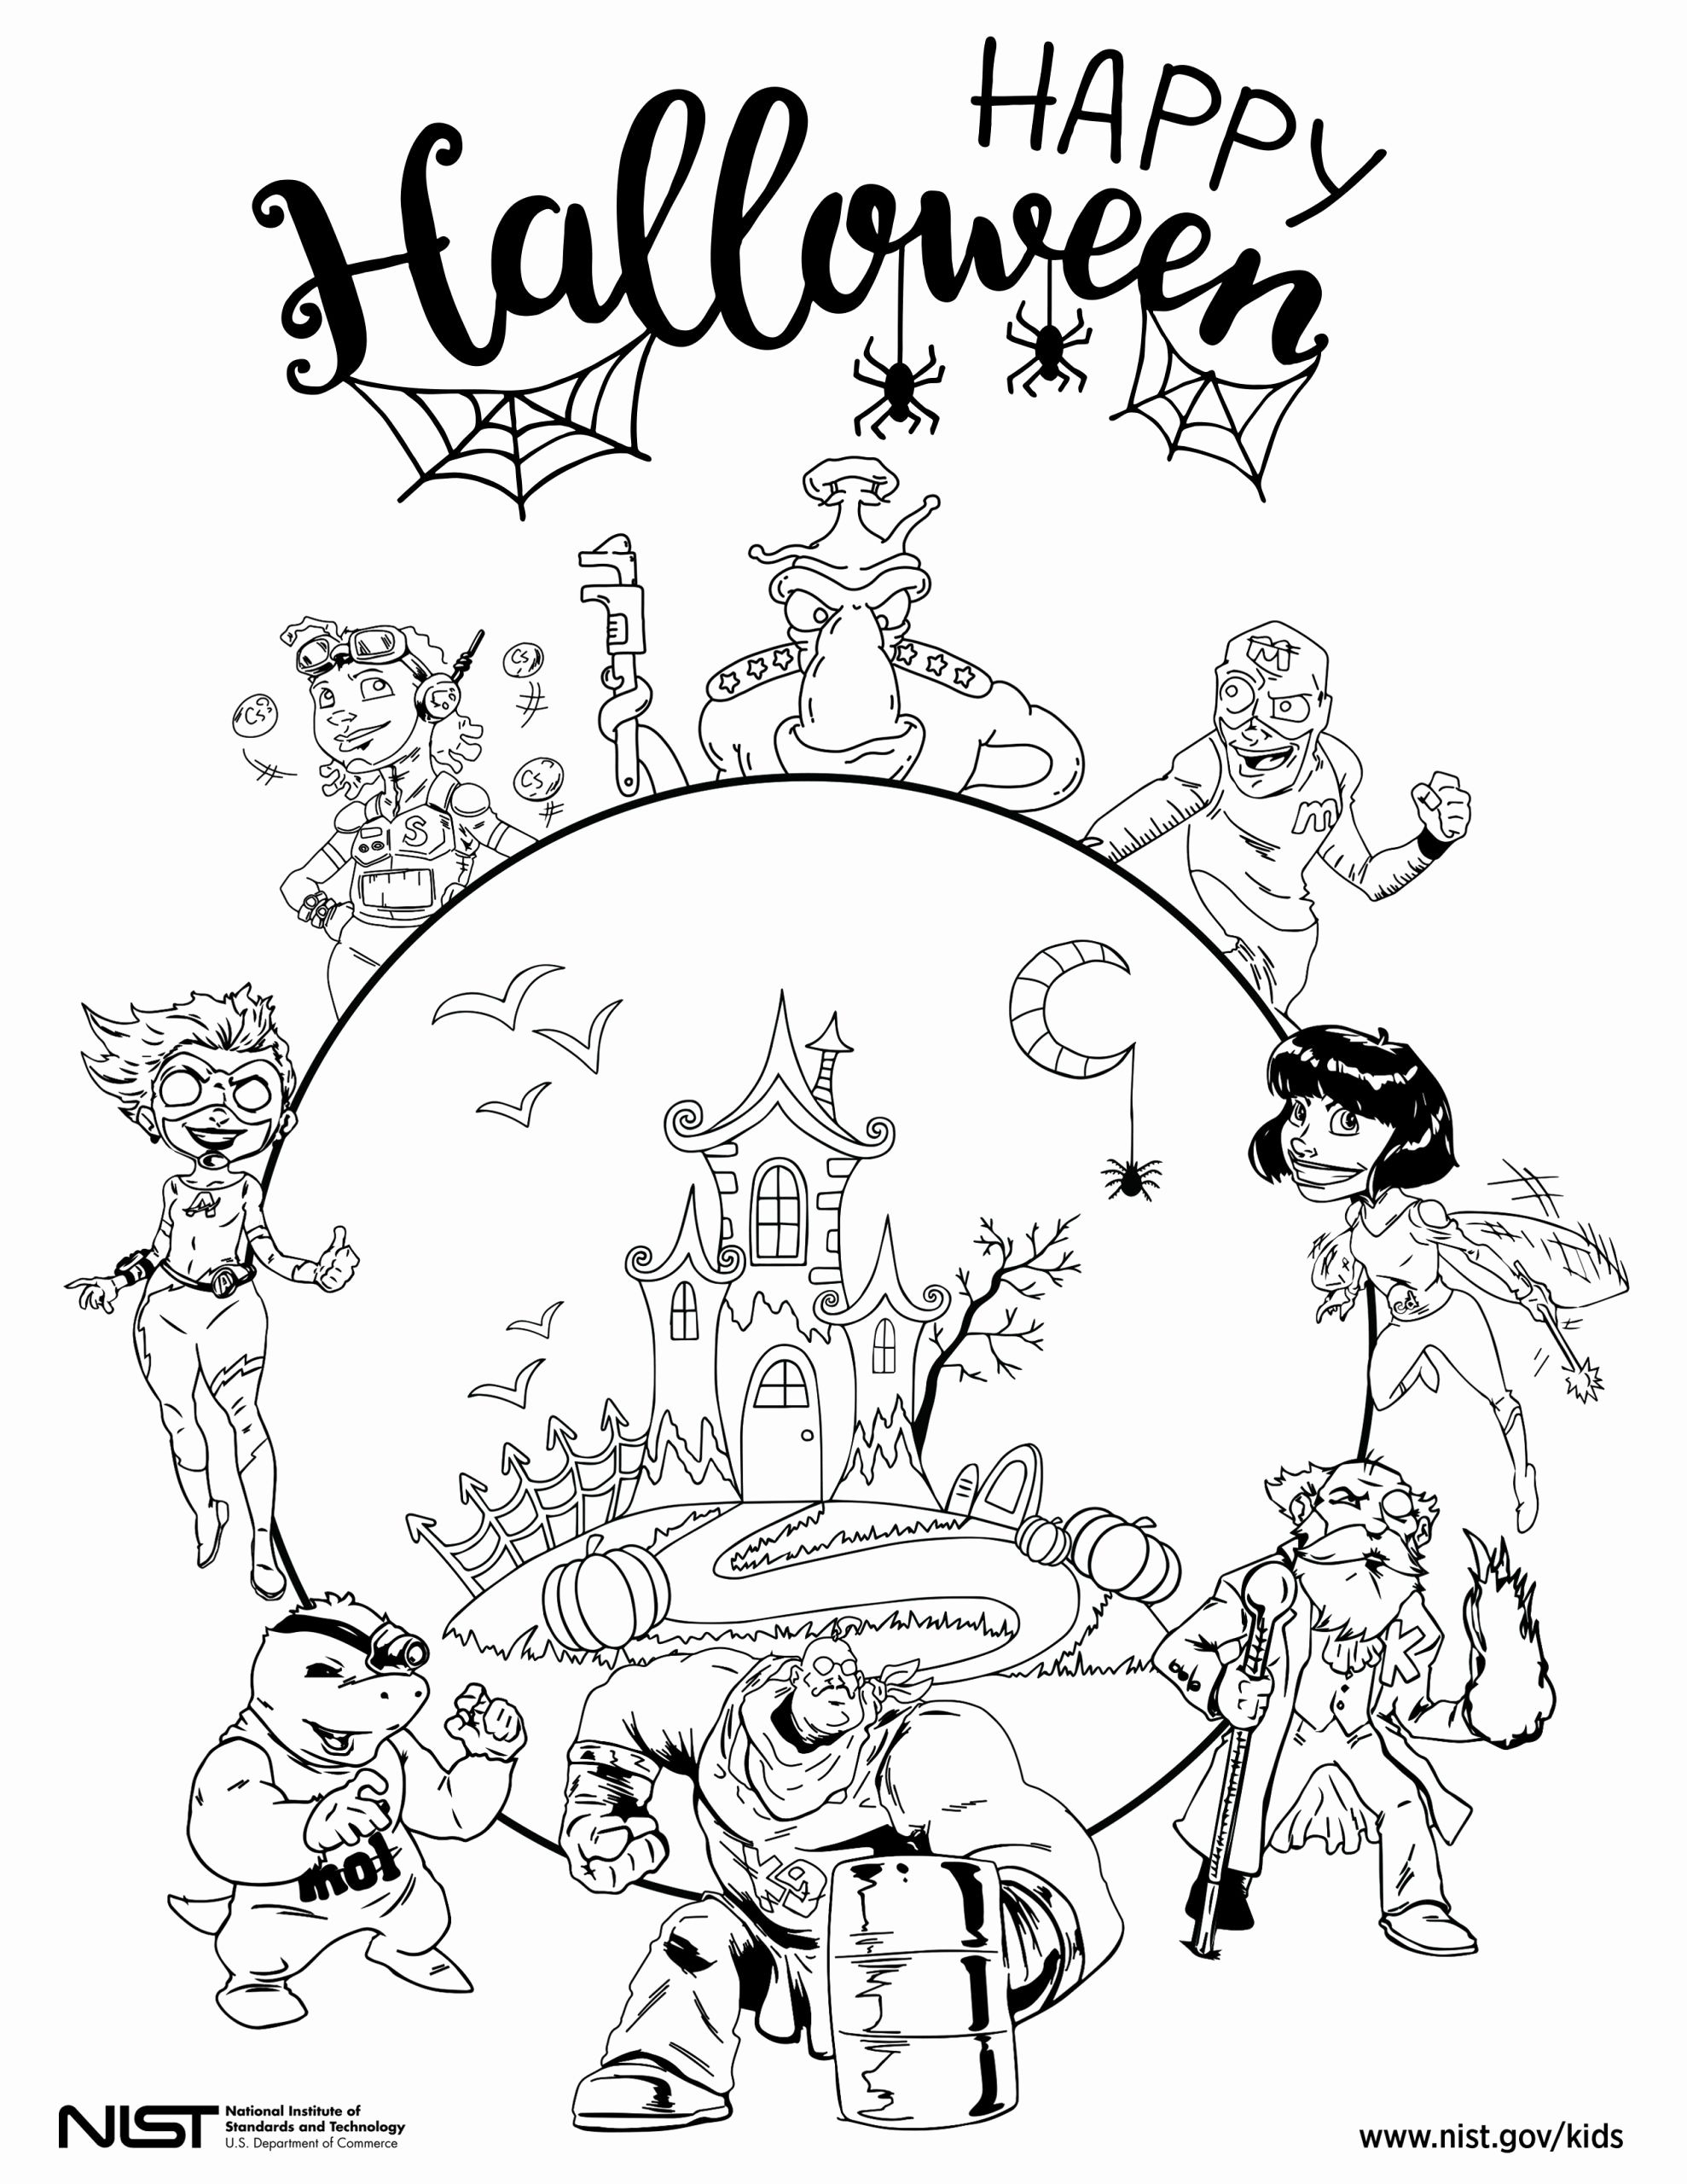 Lego Halloween Coloring Pages - Hd Football